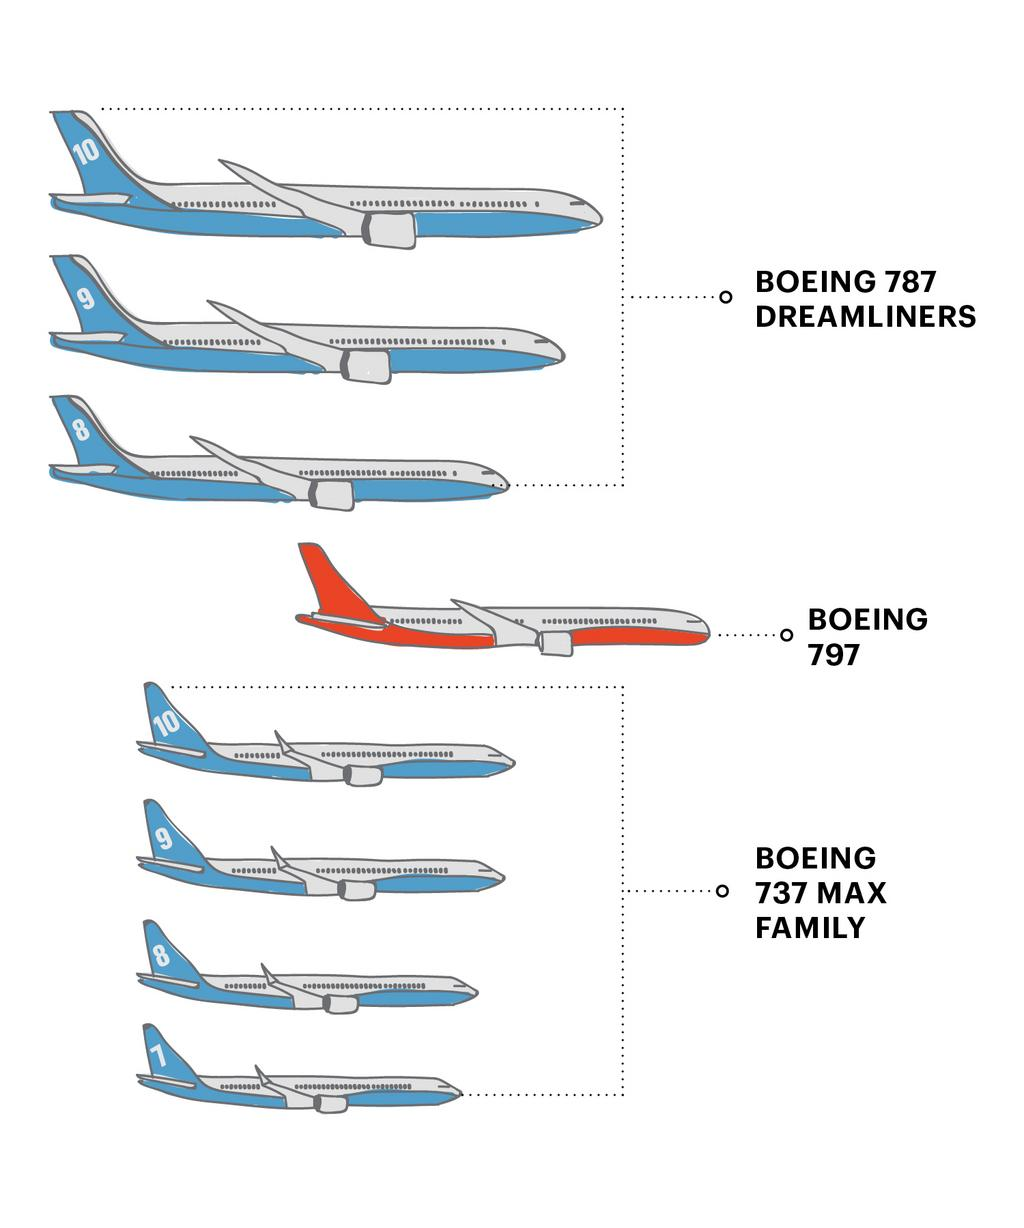 Boeing 797 size. ""